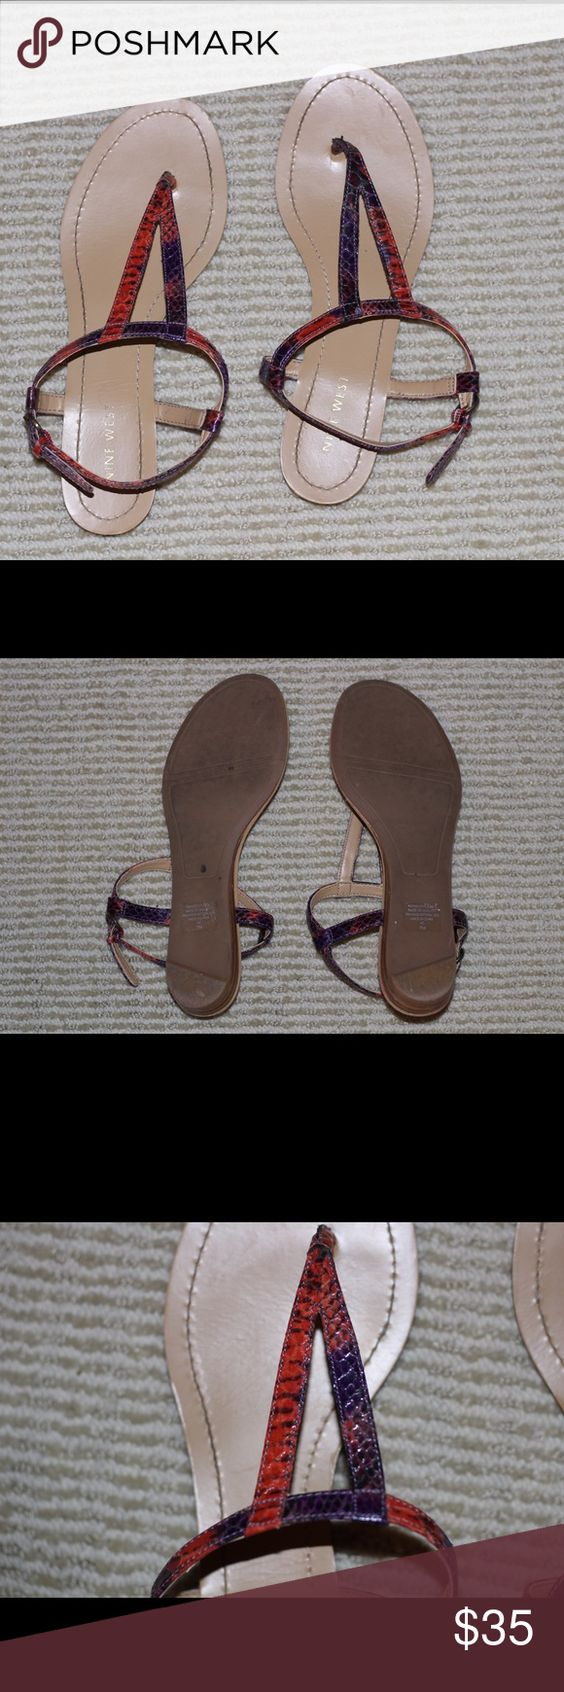 Nine West sandals Worn once! In perfect condition. Nine West Shoes Sandals